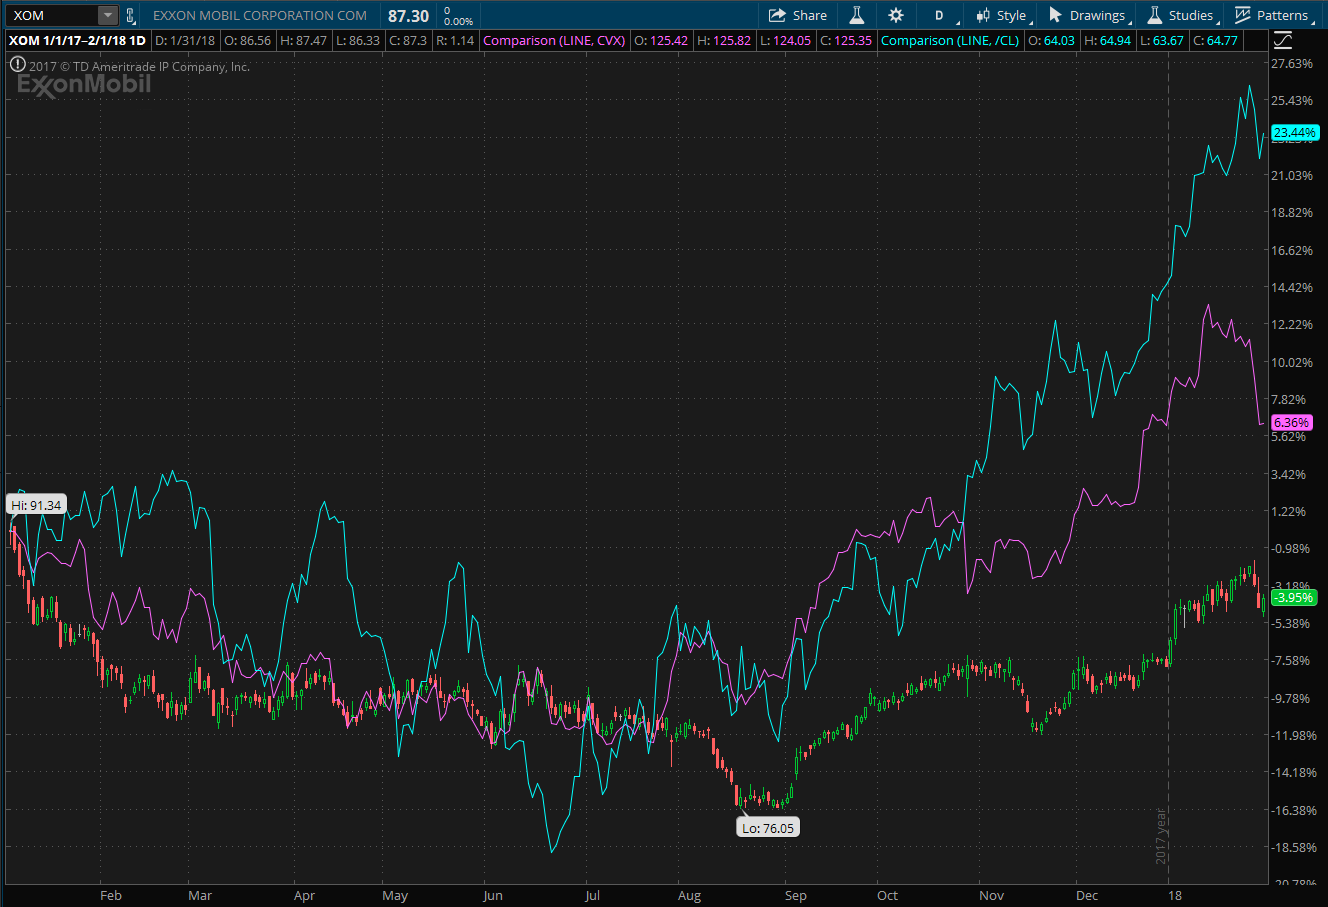 Stock chart showing ExxonMobil and Chevron stock performance